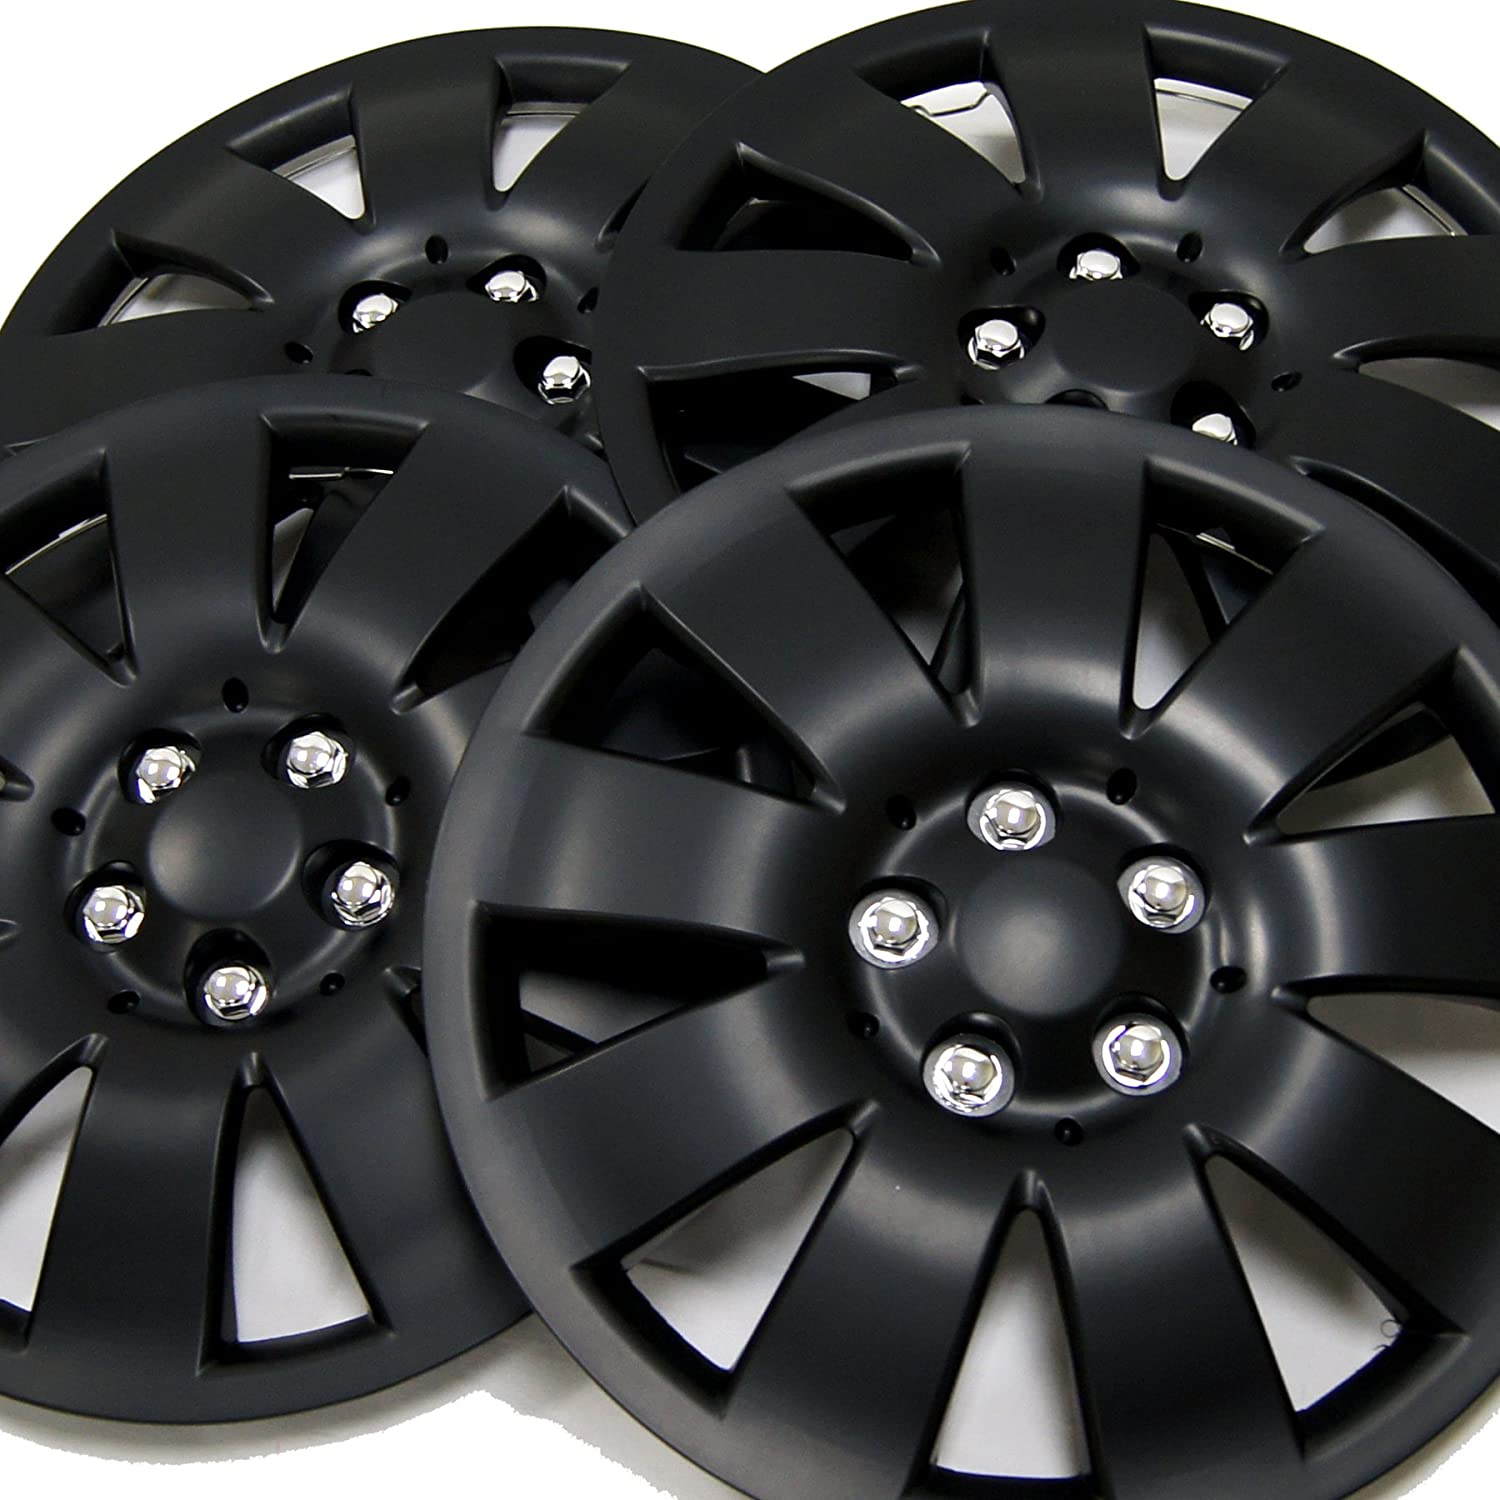 17-Inches Style Snap-On Tuningpros WC3-17-721-B Pop-On Pack of 4 Hubcaps Type Matte Black Wheel Covers Hub-caps